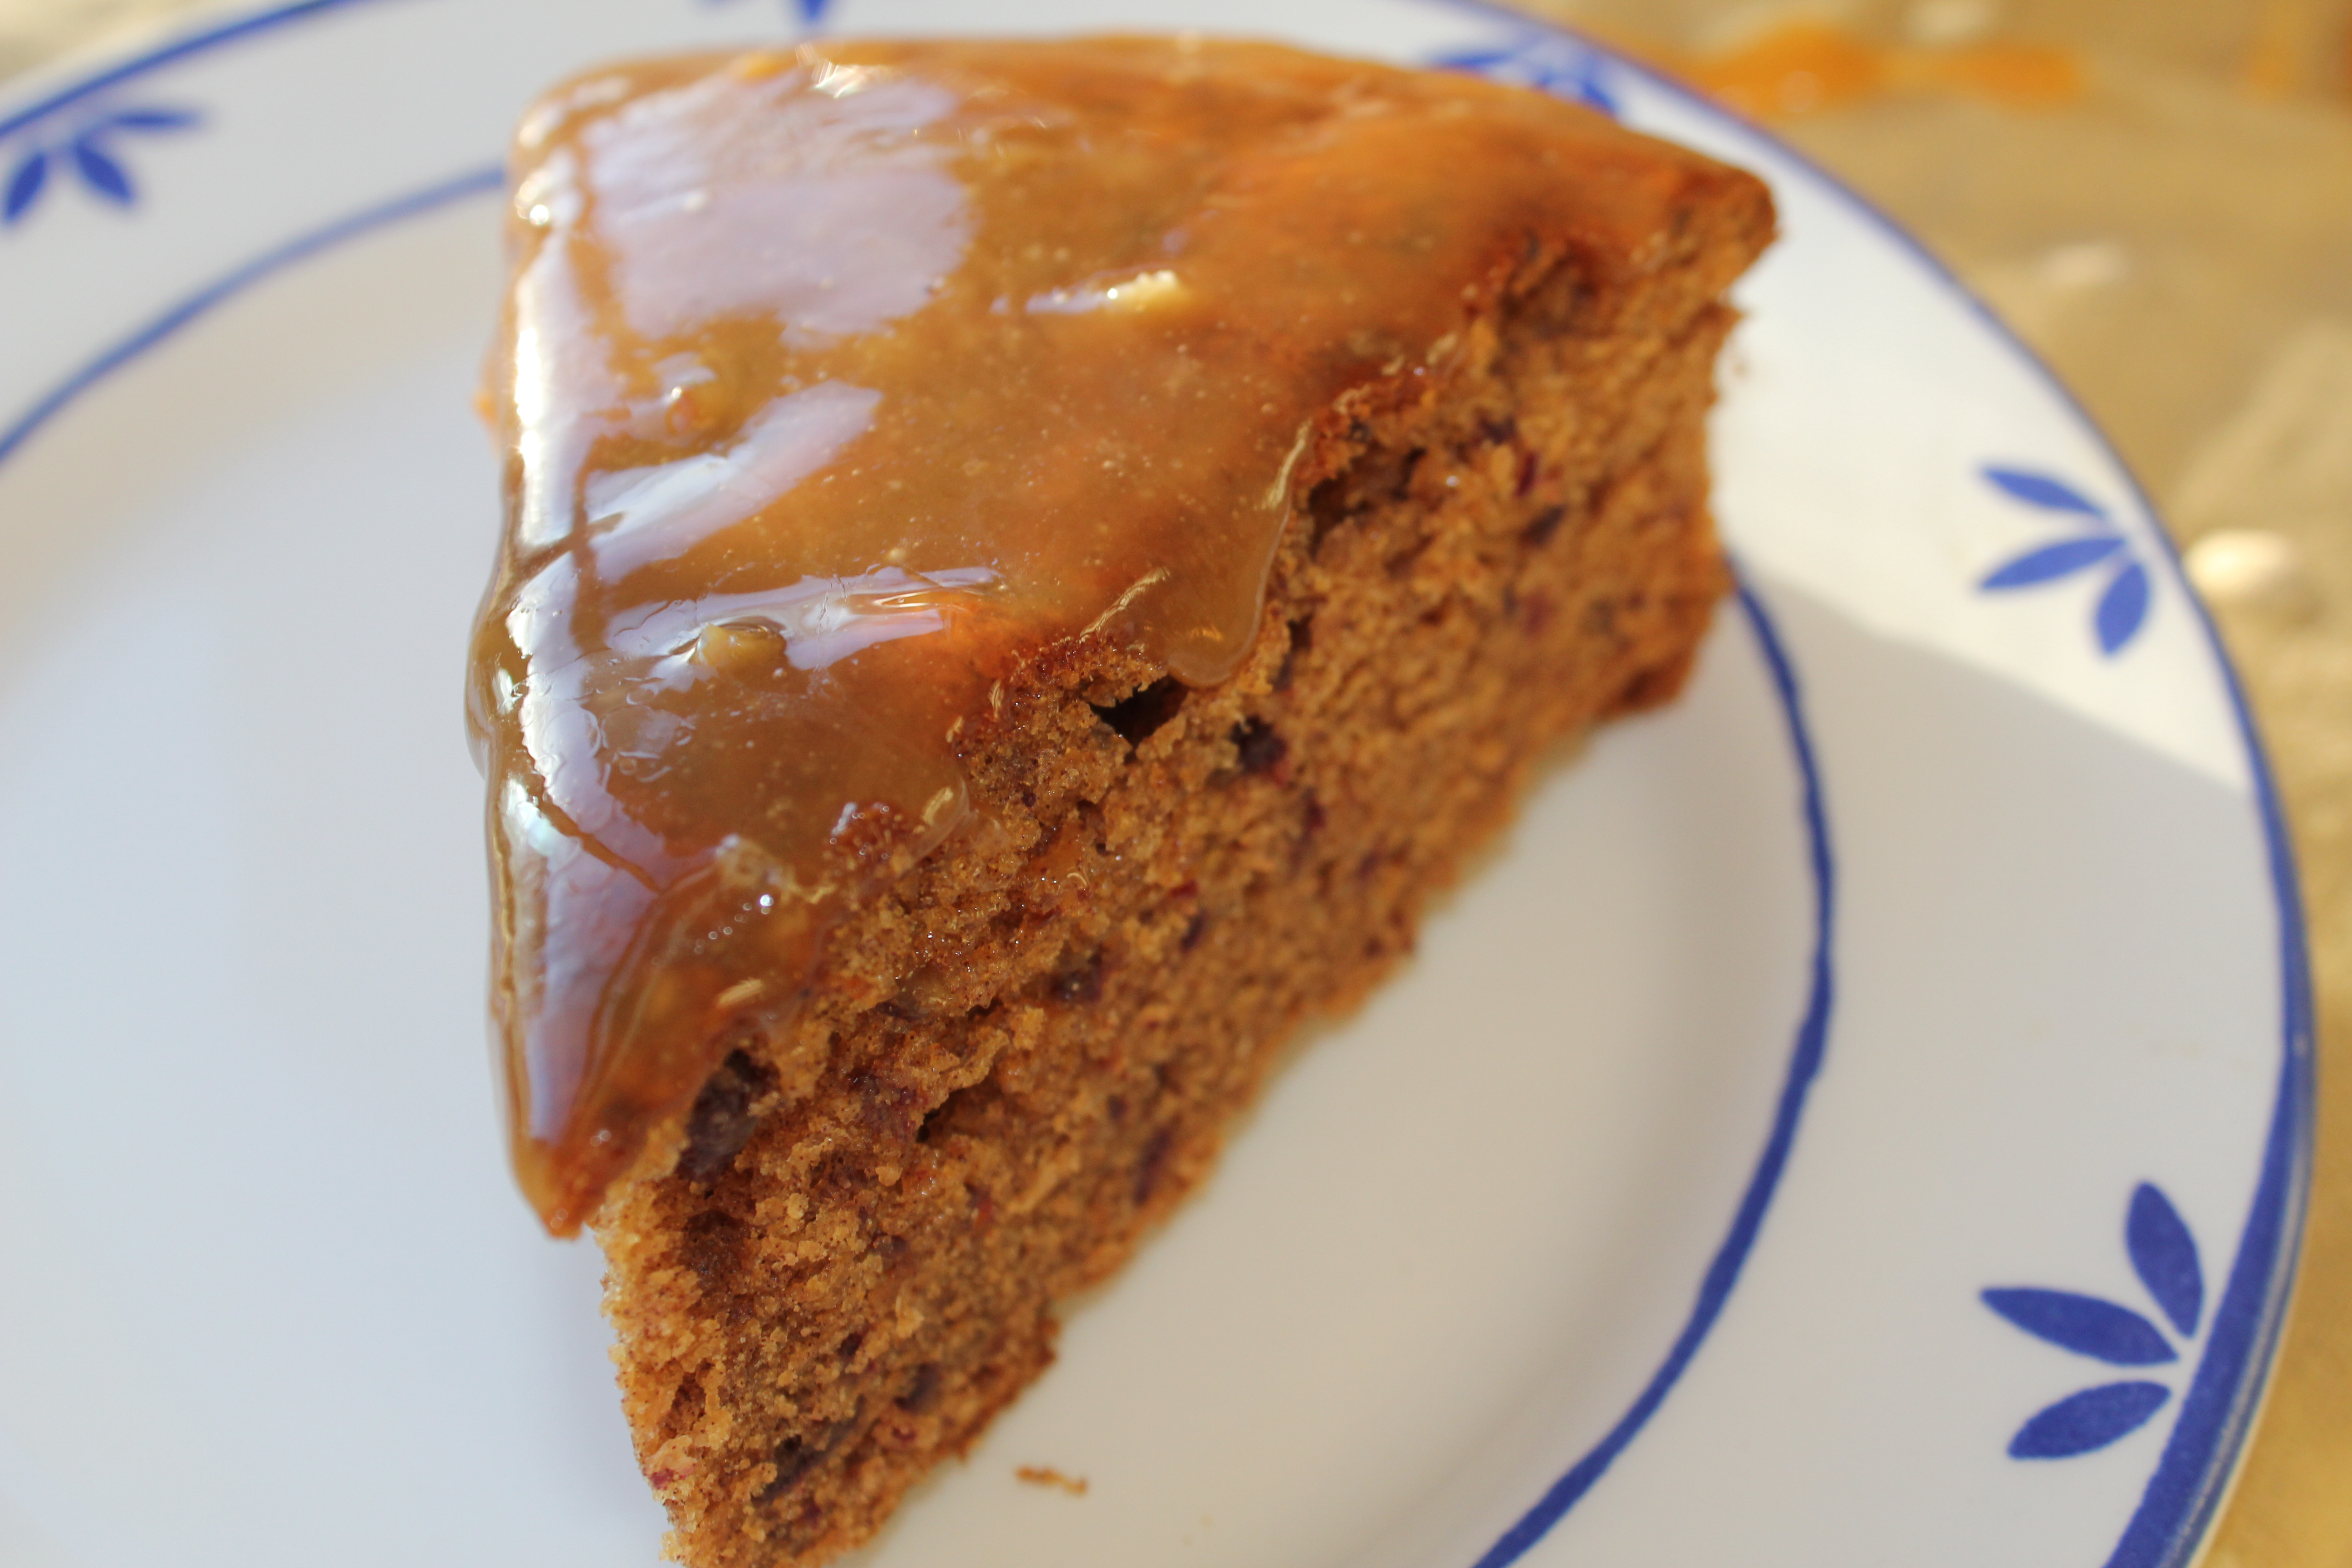 The Best Sticky Date Cake With Toffee Sauce Celines Cuisine